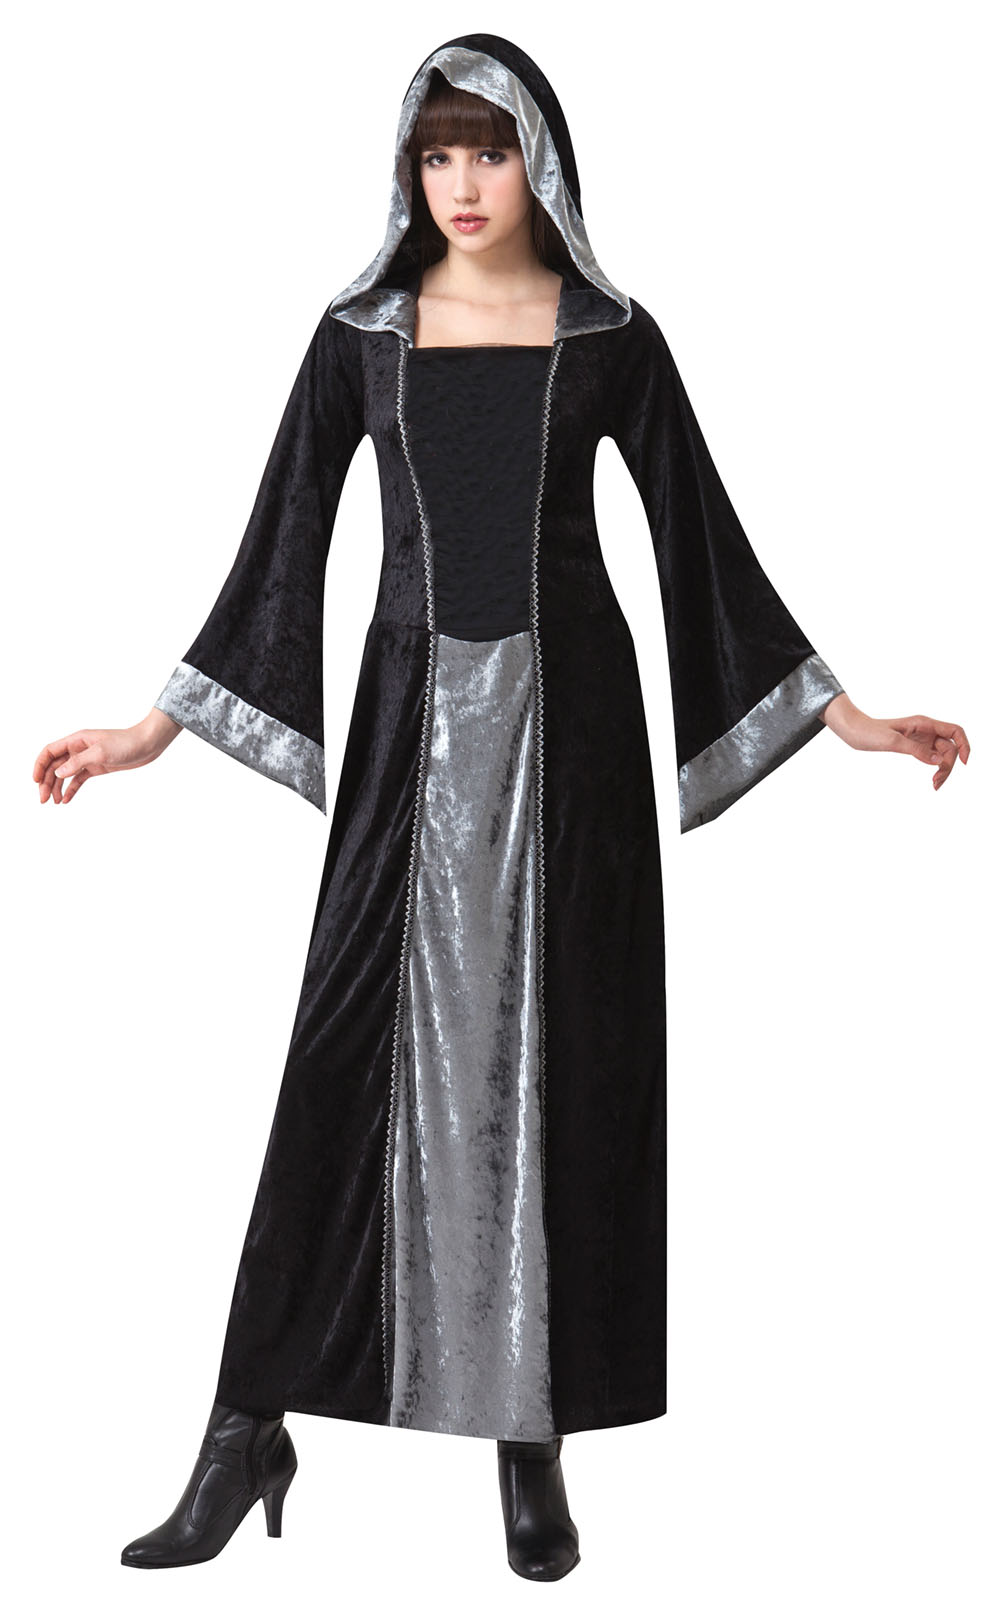 Ladies Black & Grey Gothic Halloween Gown Fancy Dress Costume Outfit UK 10-14